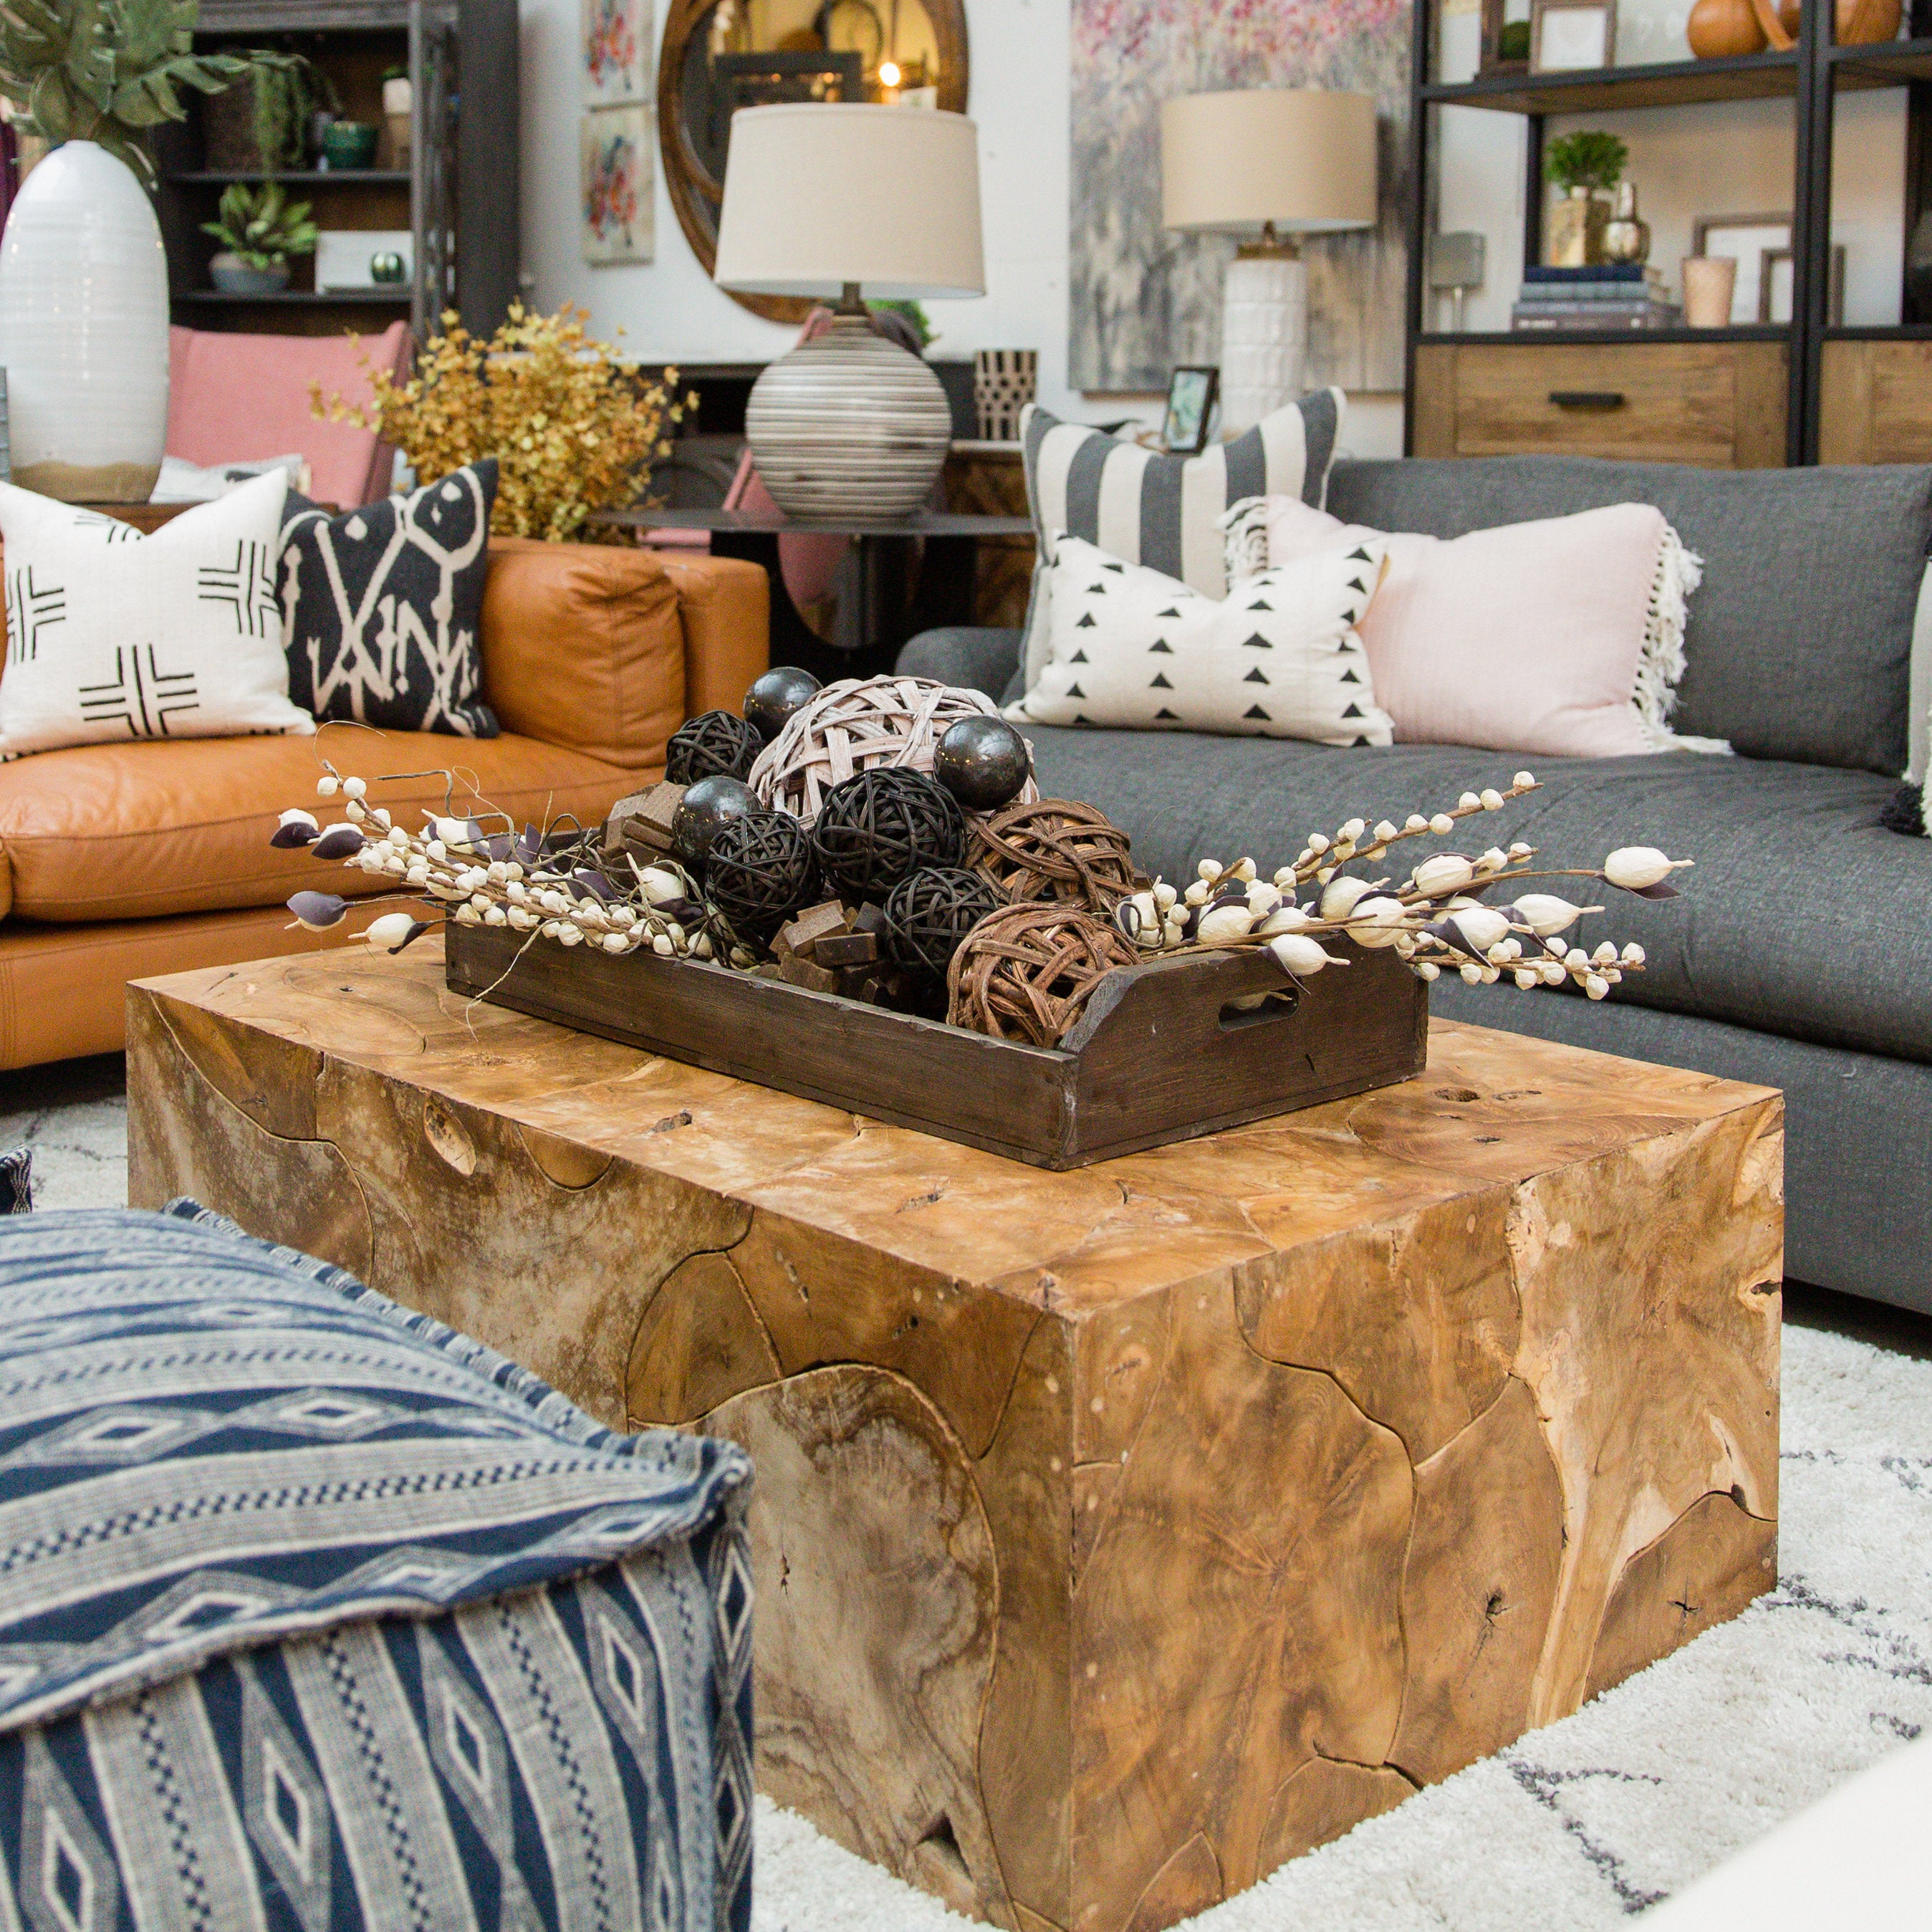 Superb Ask Trove Styling Your Coffee Table Trove Warehouse Andrewgaddart Wooden Chair Designs For Living Room Andrewgaddartcom